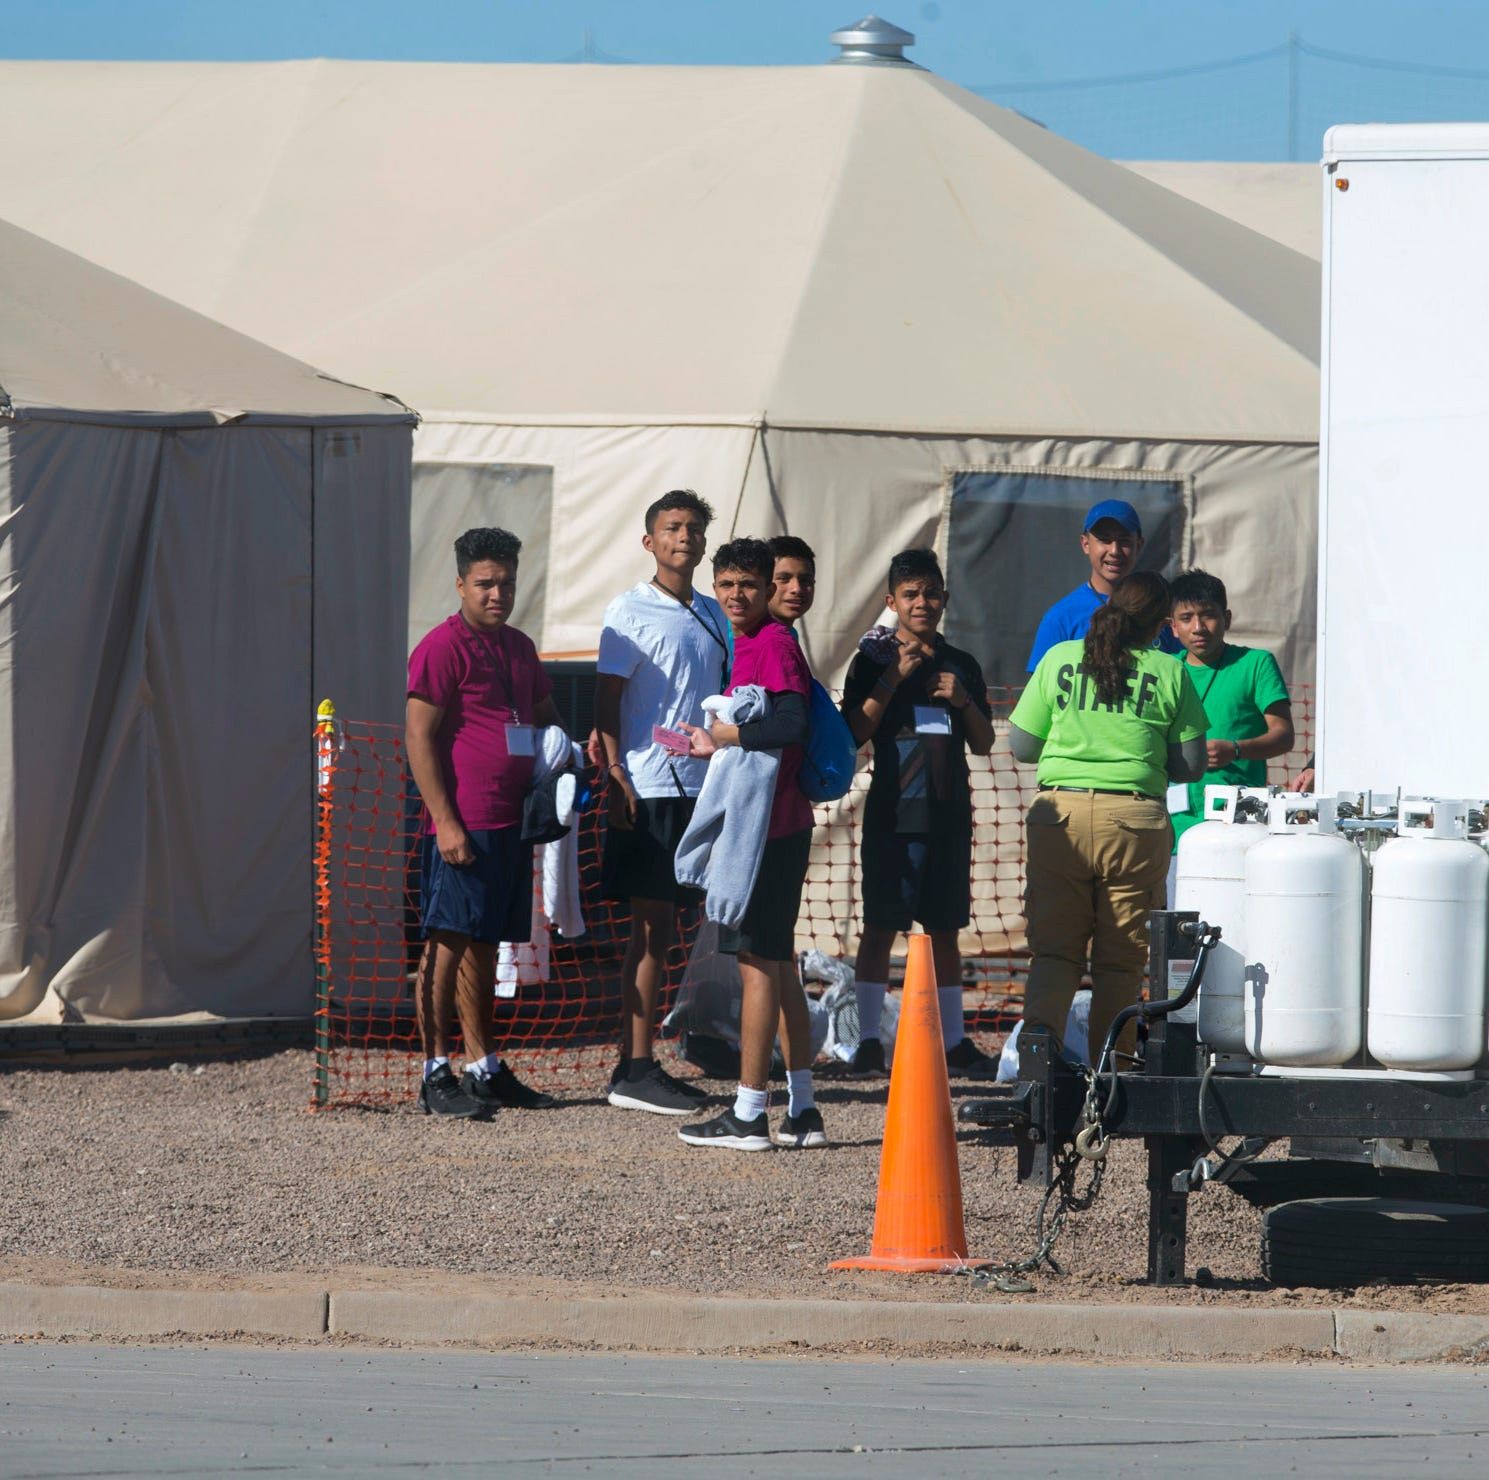 US military to build tent city in Tornillo for migrants held by ICE